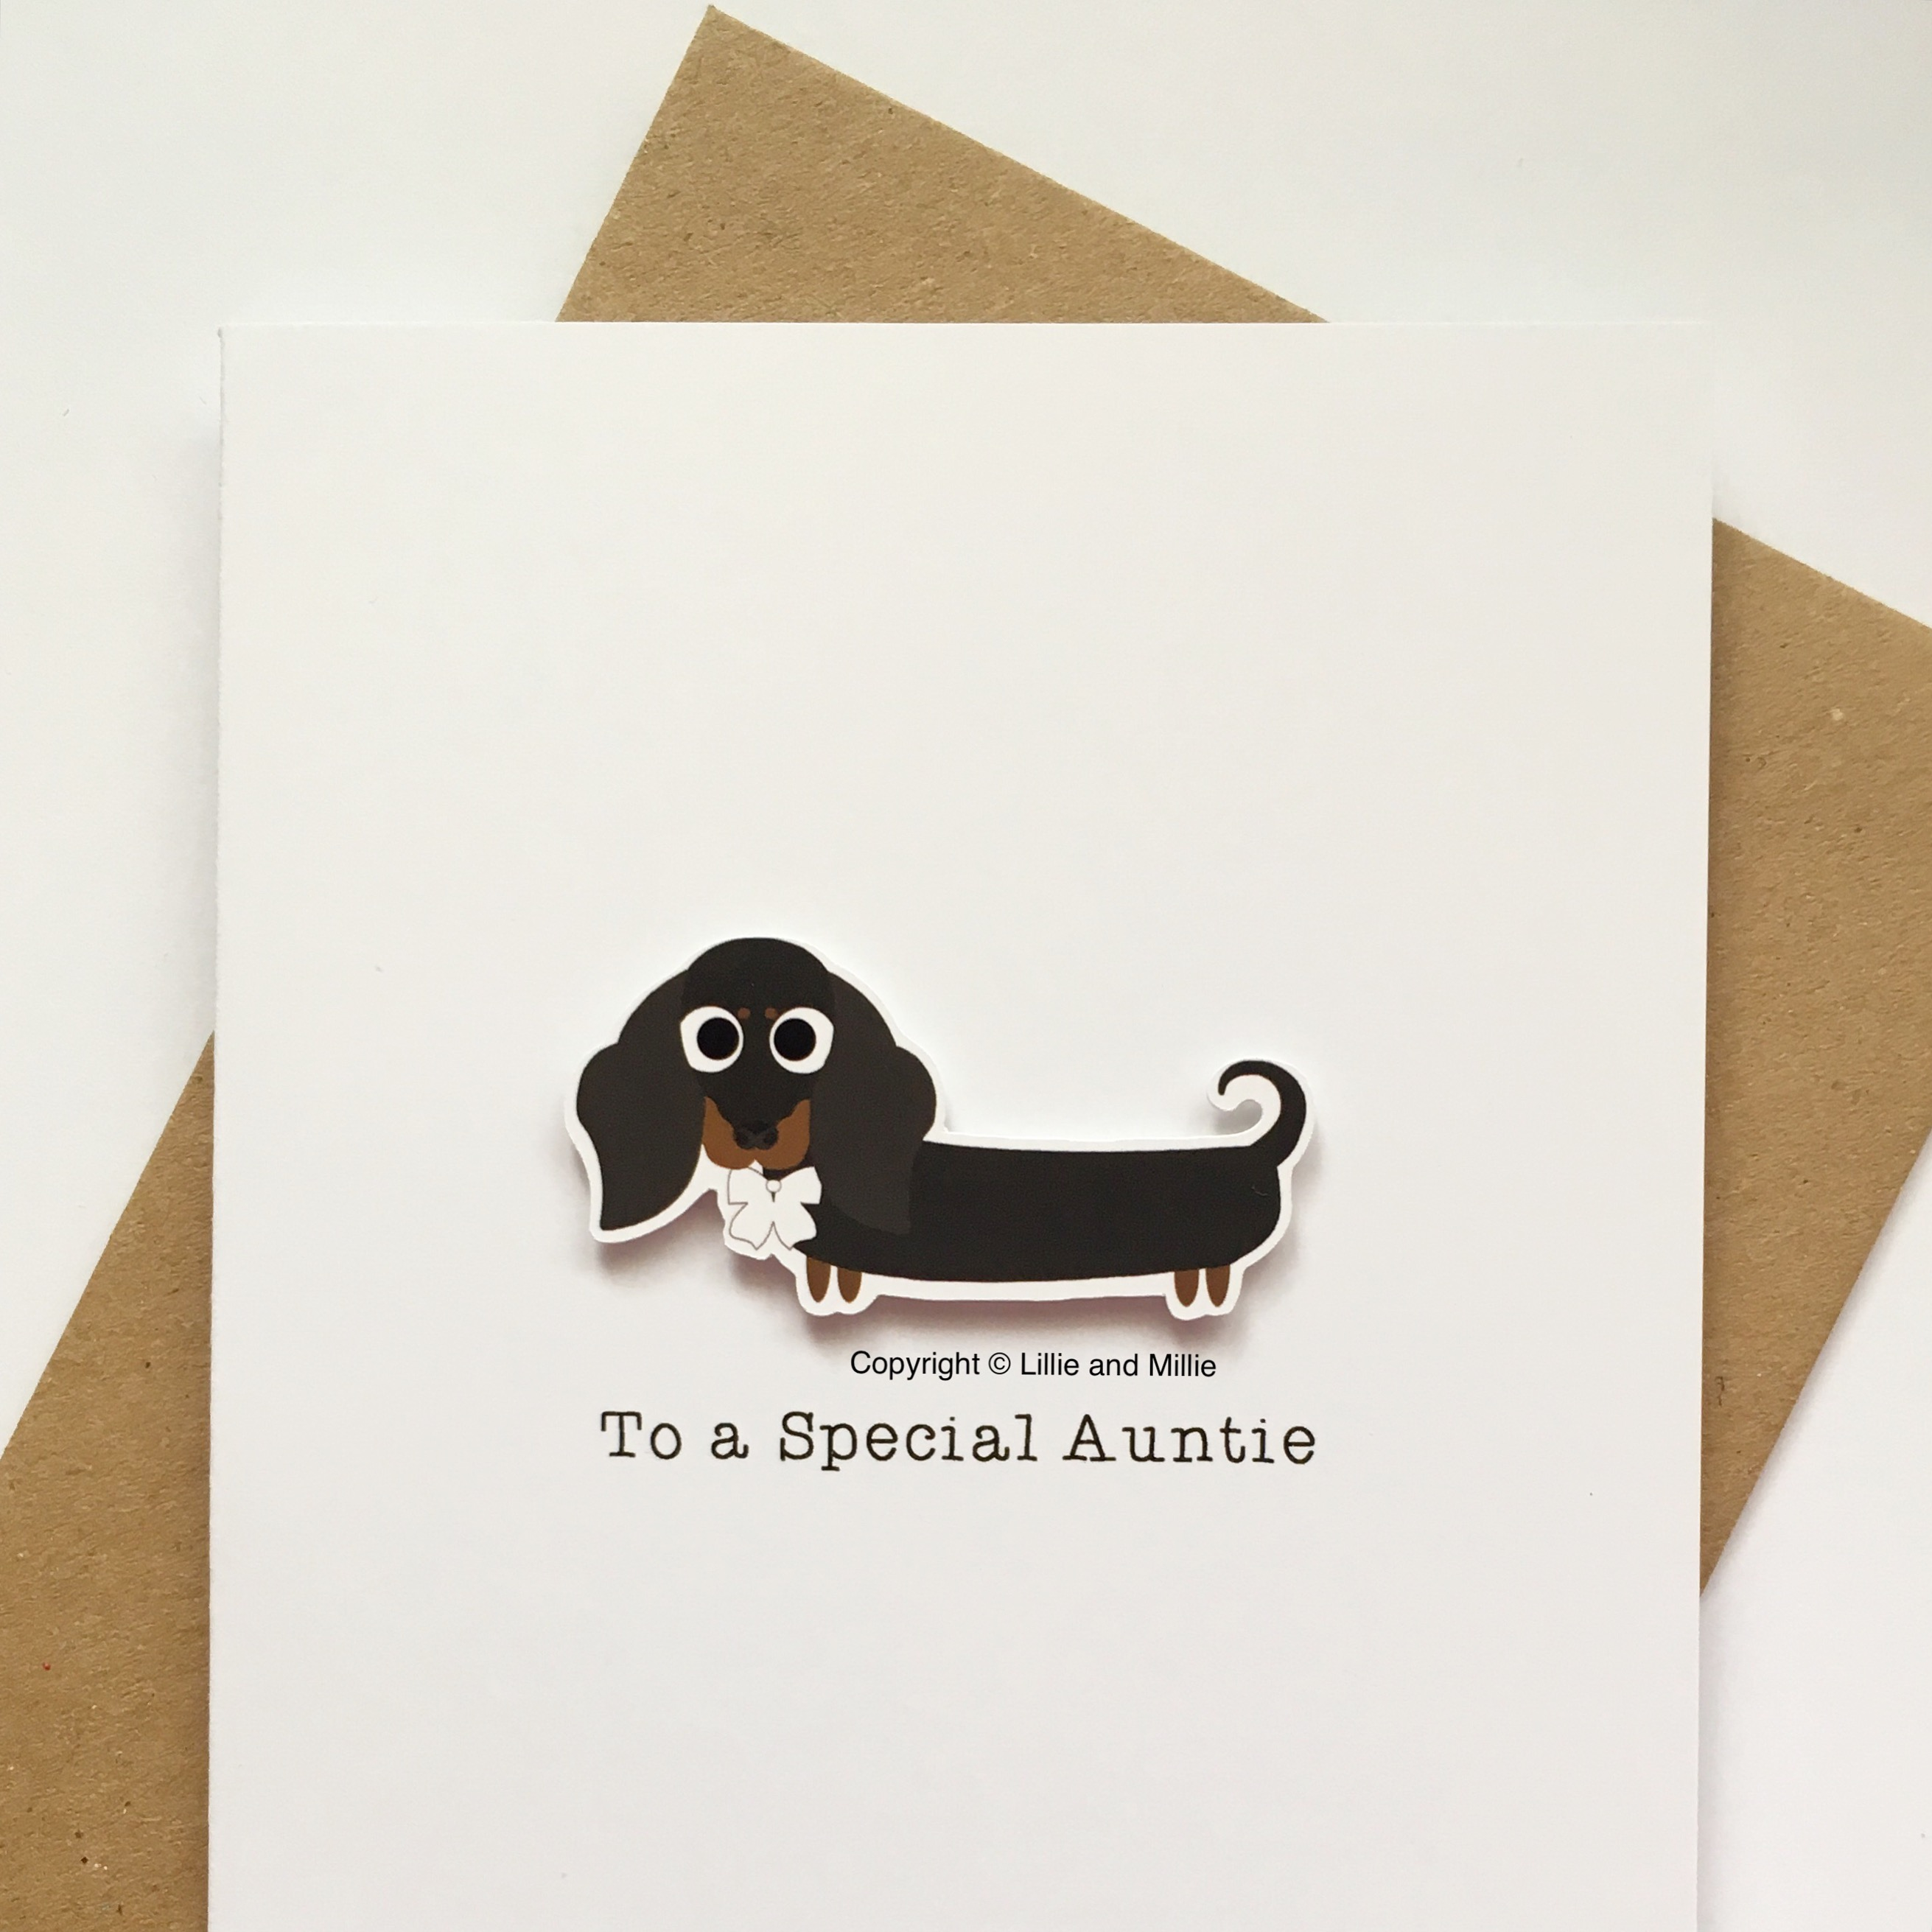 Cute and Cuddly To a Special Auntie Dachshund Card